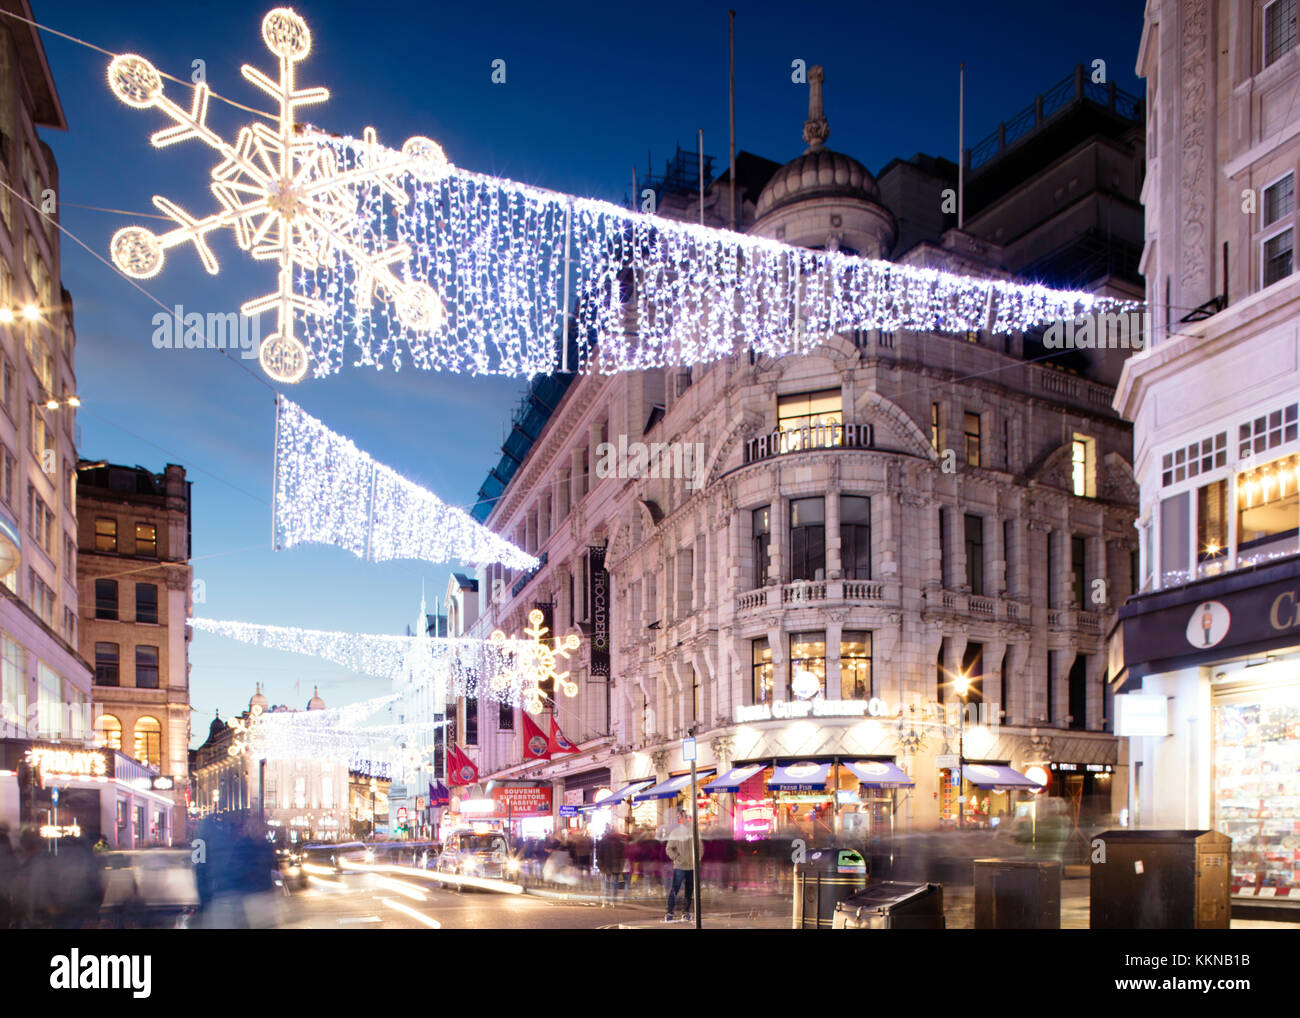 England, London, Christmas lights on Piccadilly Circus and Regent Street - Stock Image